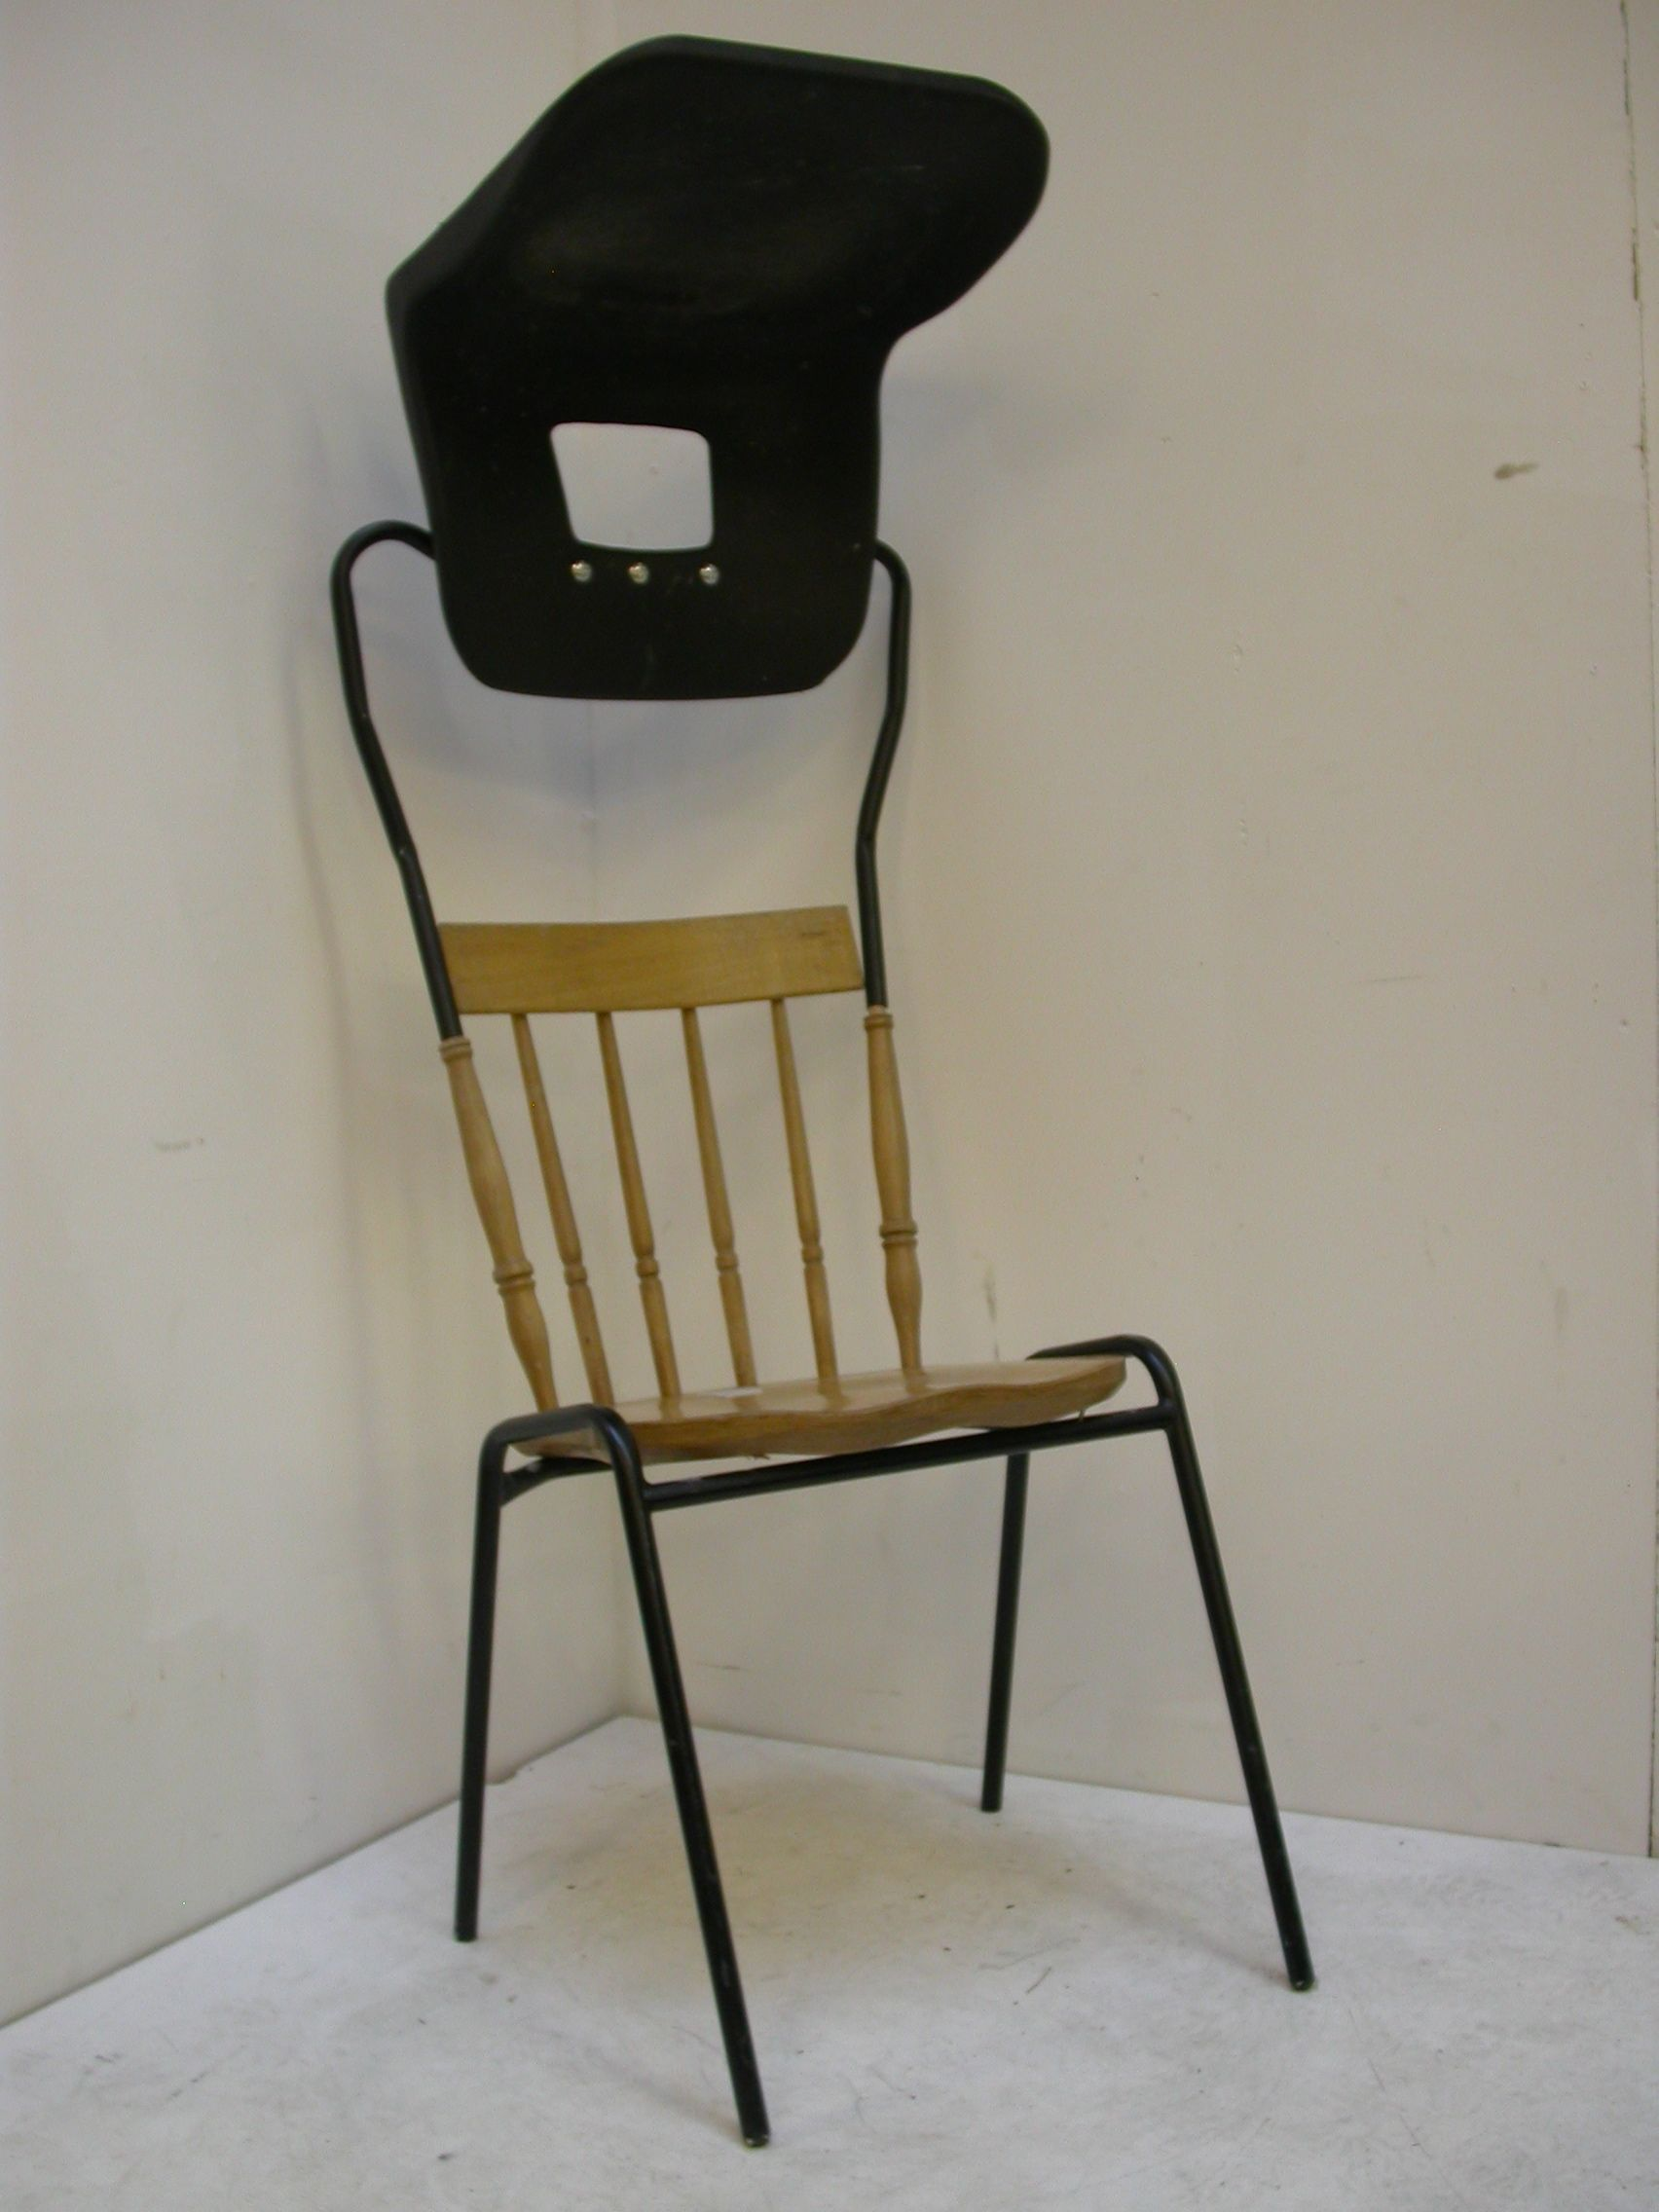 smoking ban chair two chairs moulded into one to provide a